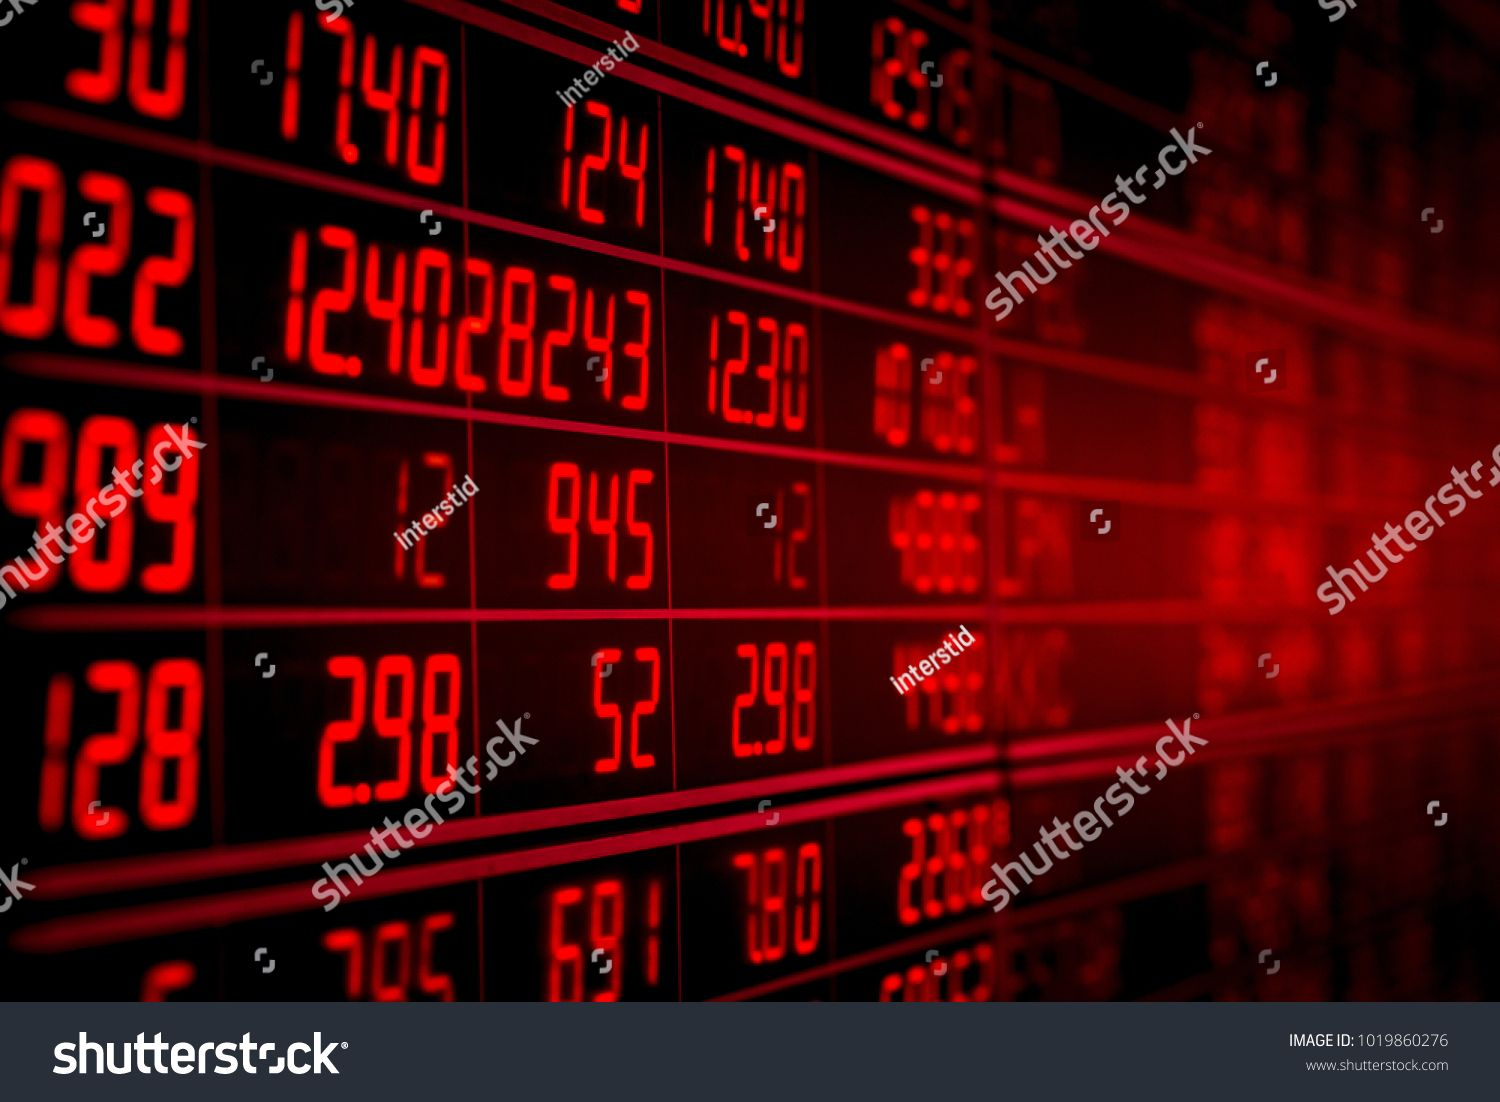 Display Of Red Electronic Board Of Stock Market Quotes Down Trend Or Recession Concept Board Stock Ele Stock Market Quotes Infographic Templates Concept Board